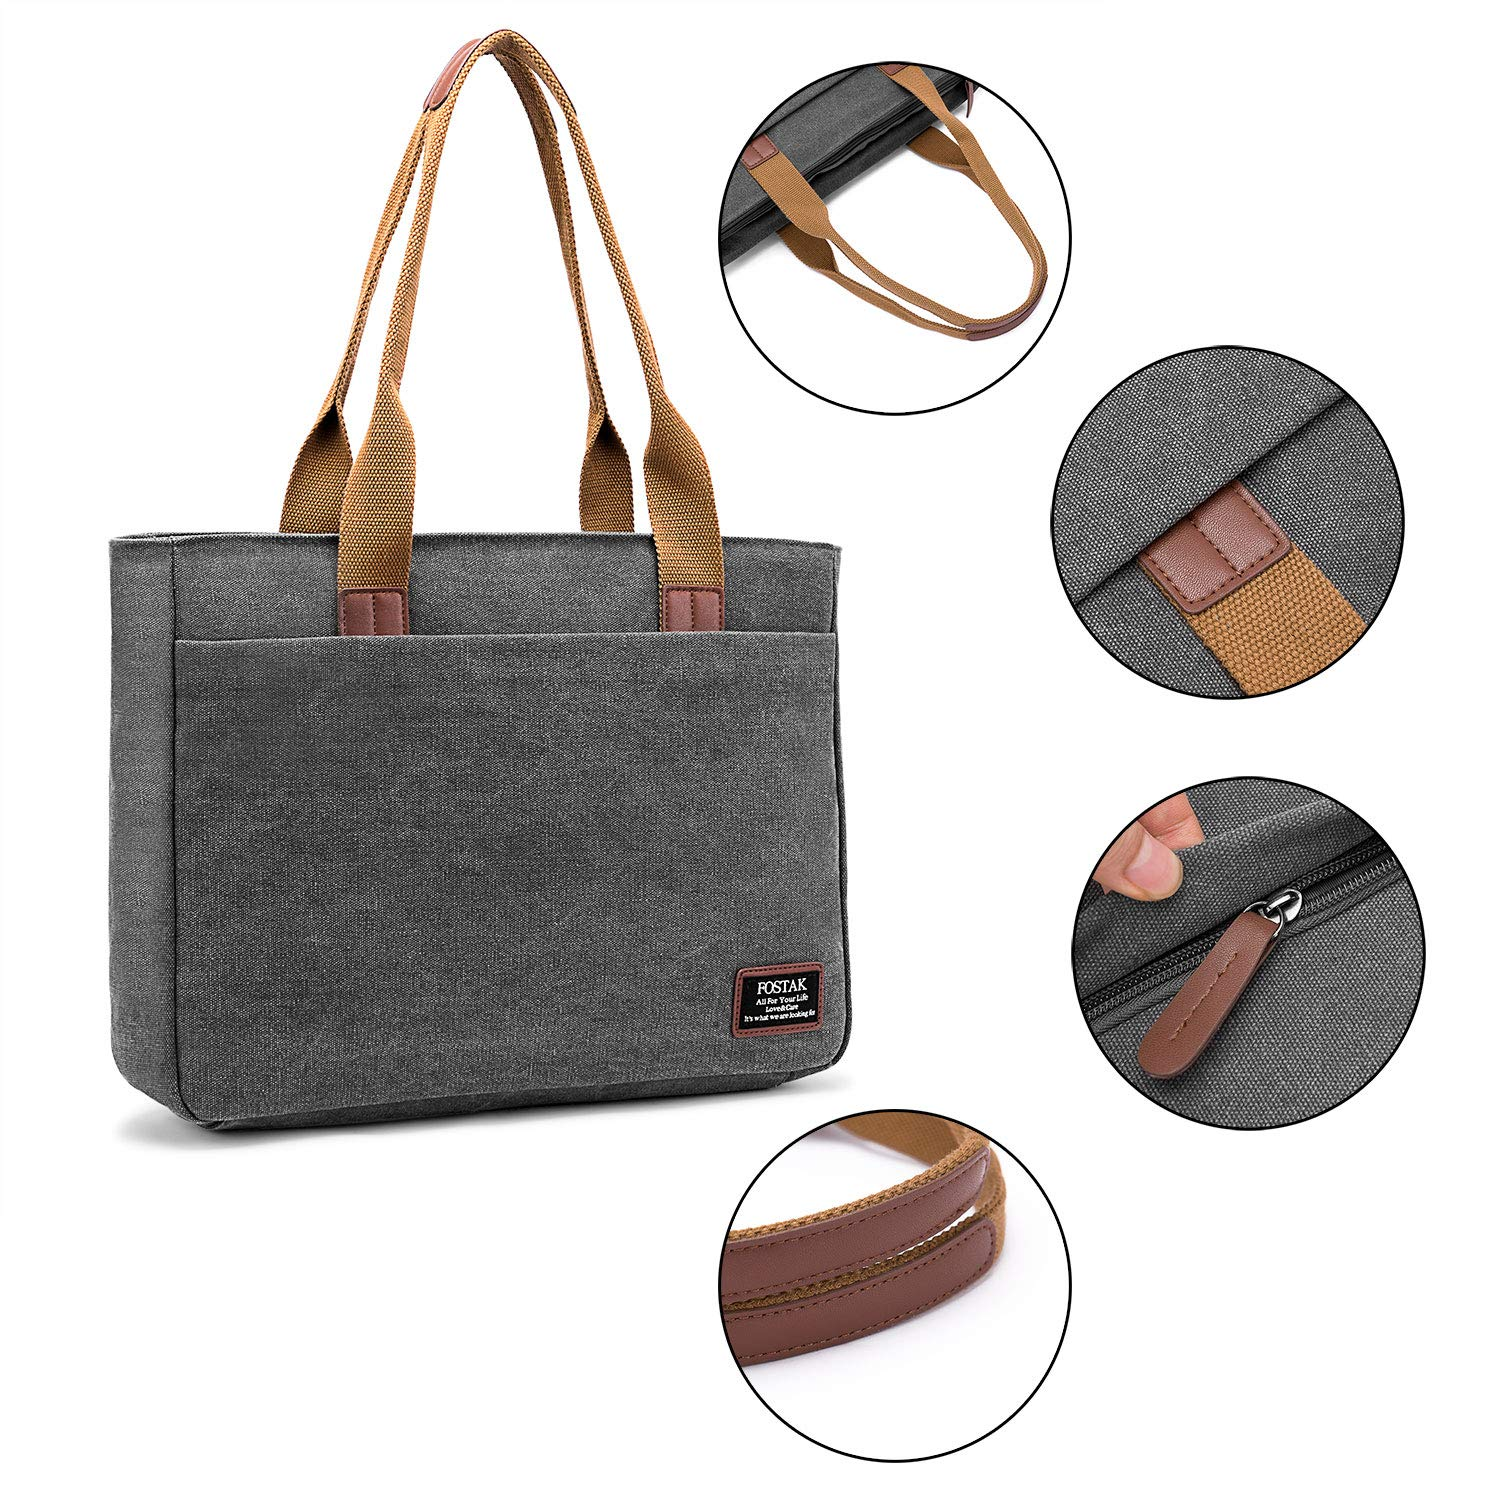 f0488839e DTBG Laptop Tote Bag, 15.6 Inch Women Shoulder Bag Canvas Briefcase Casual  Handbag Laptop Case for 15-15.6 Inch  Tablet/Ultra-Book/MacBook/Chromebook(Dark ...